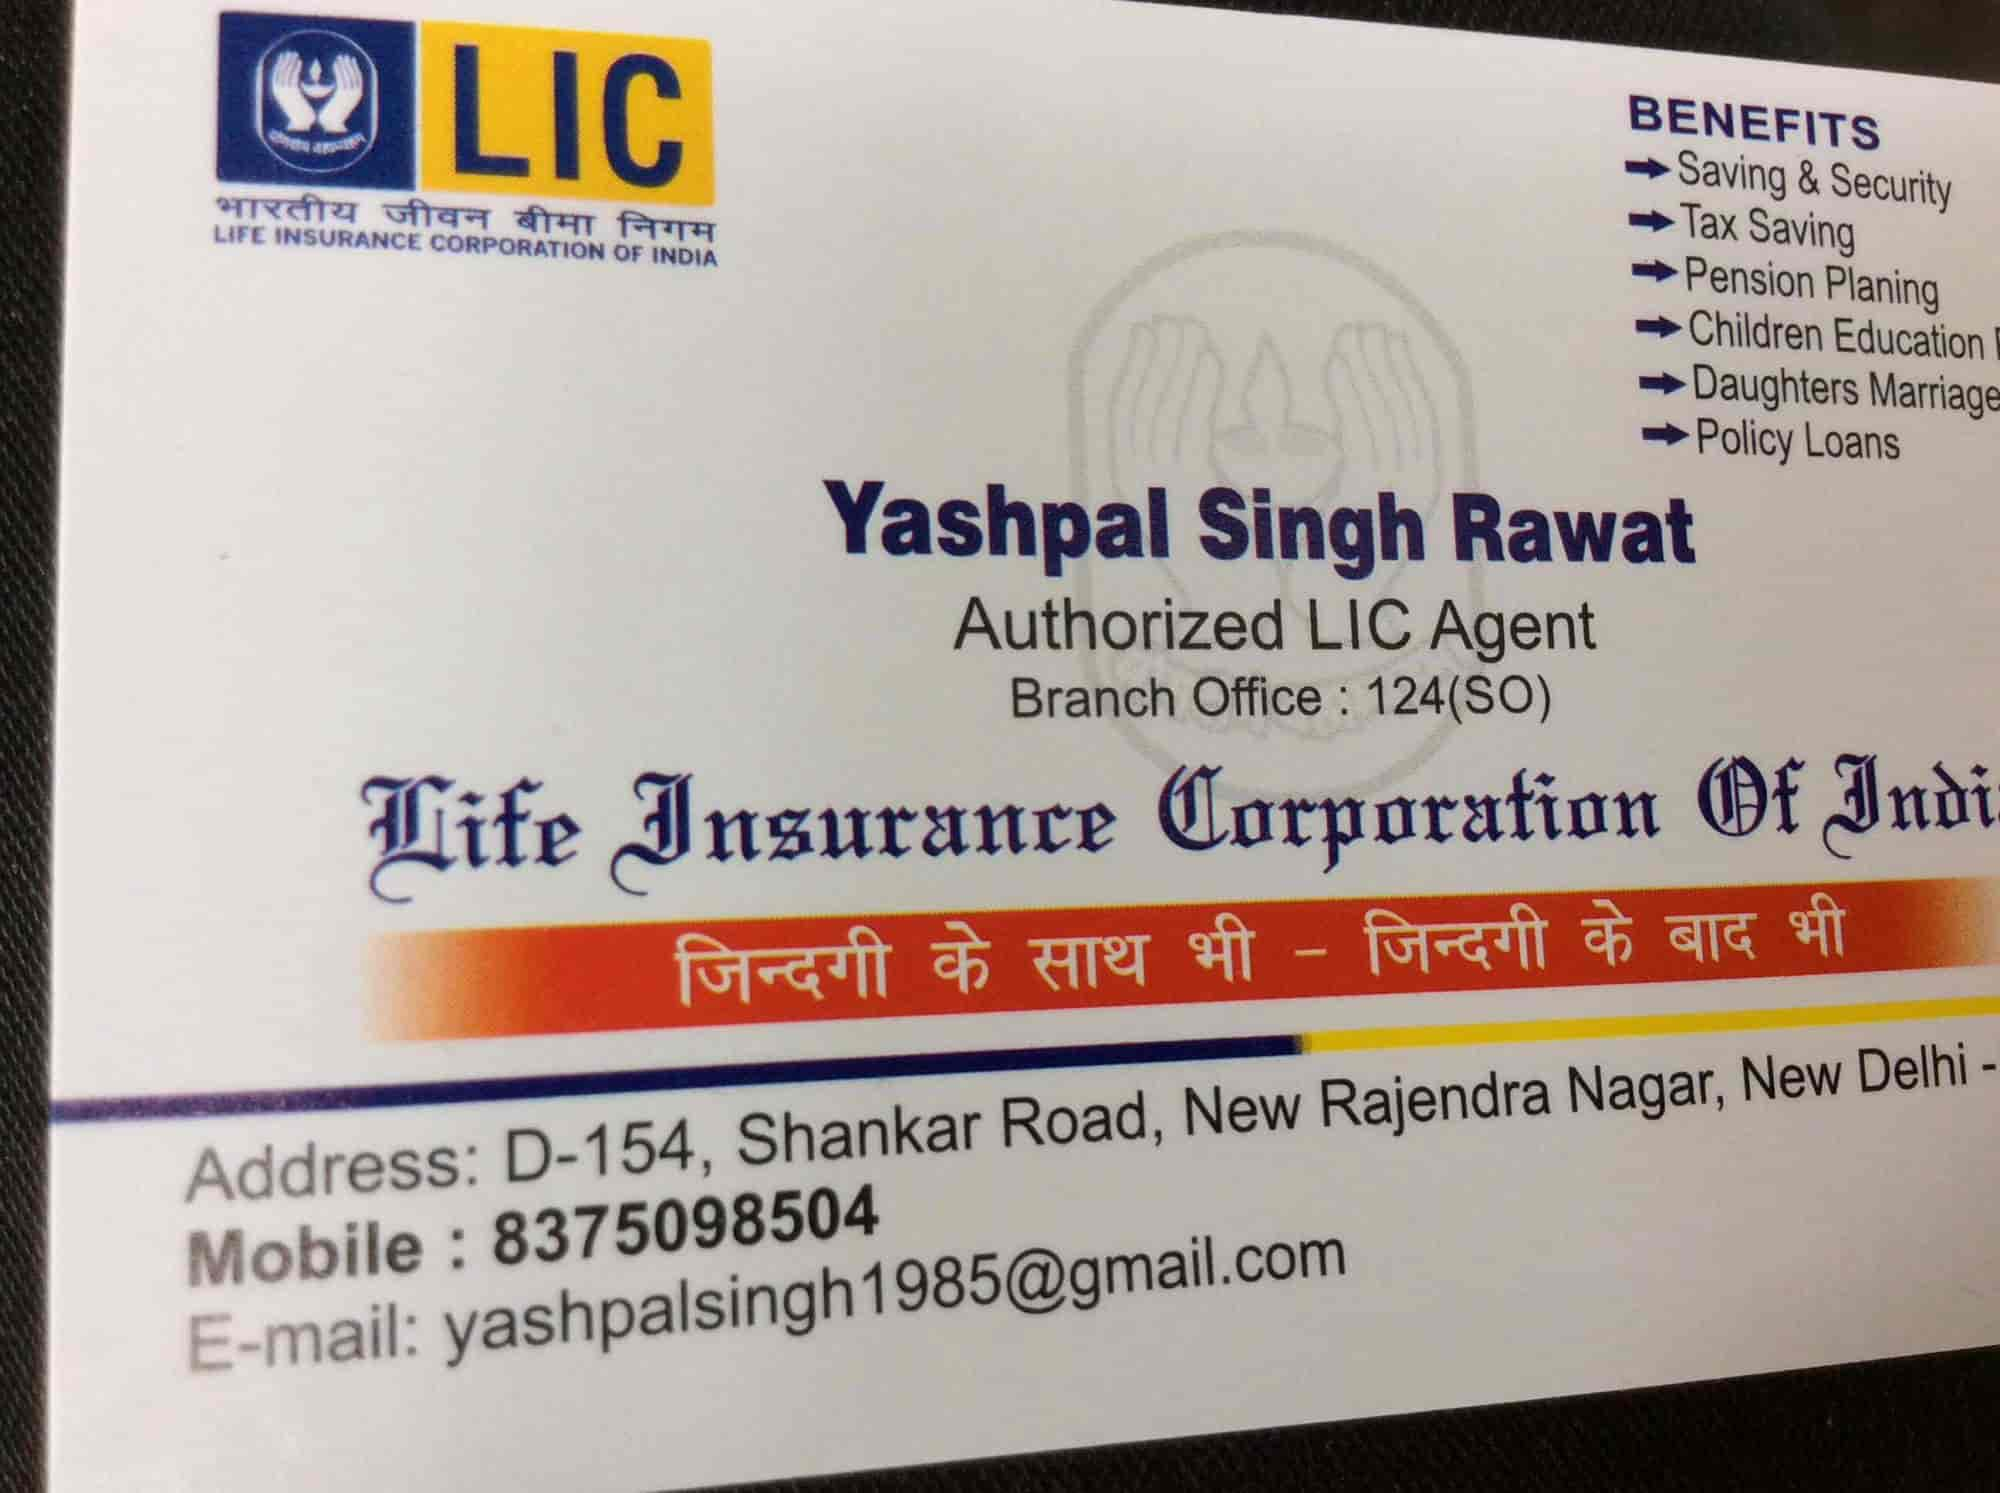 Lic agent yashpal singh rawat photos dilshad garden delhi visiting card lic agent yashpal singh rawat photos dilshad garden delhi car colourmoves